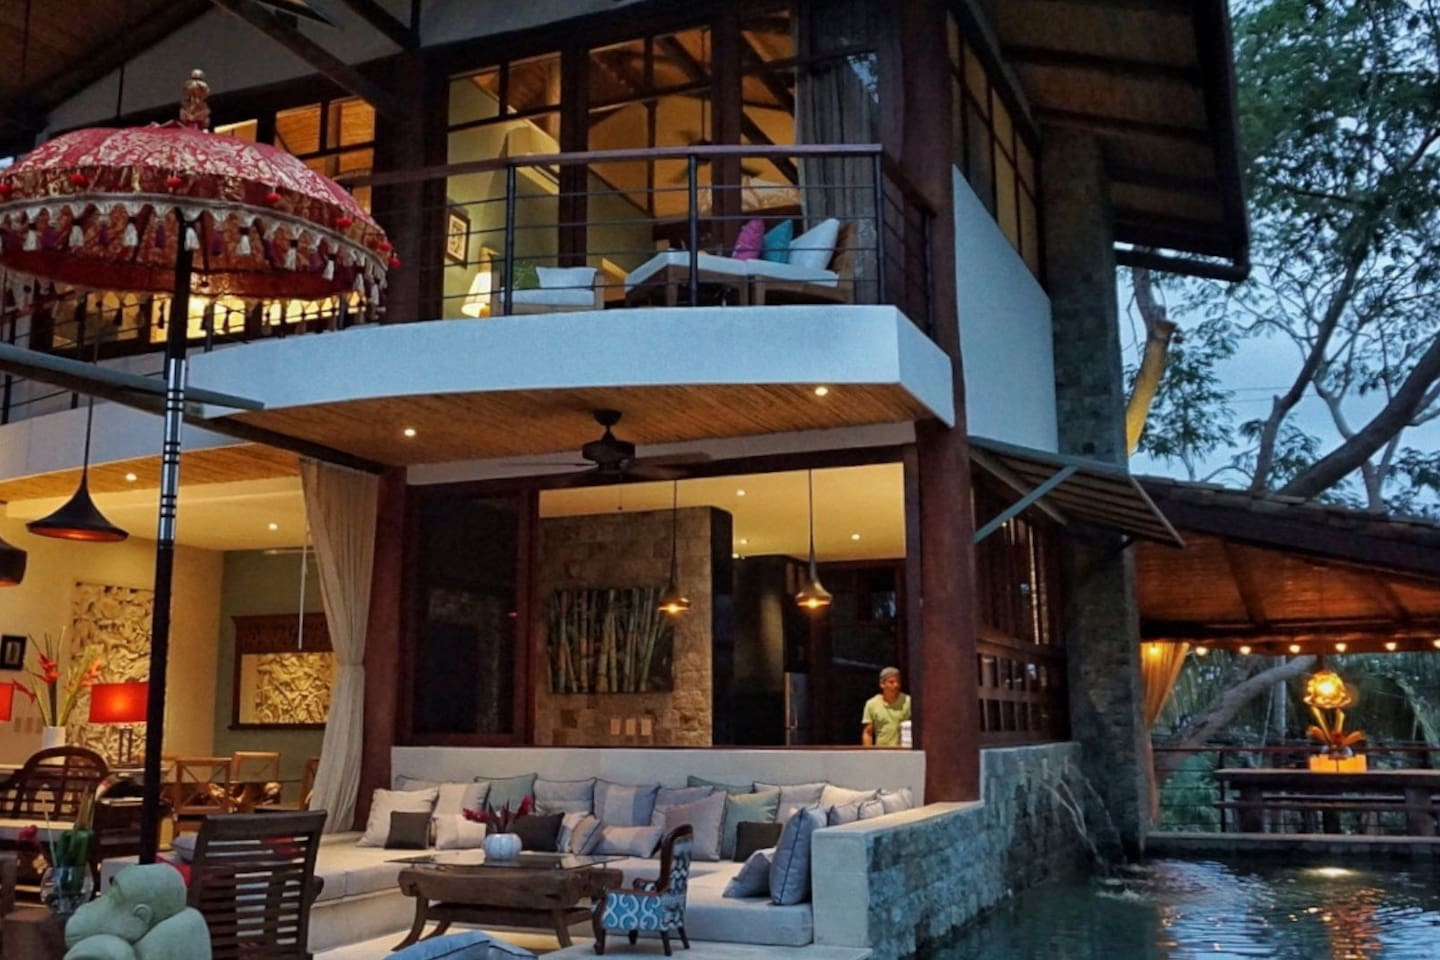 This stunning villa located in Manuel Antonio might be the spot for you this travel season.